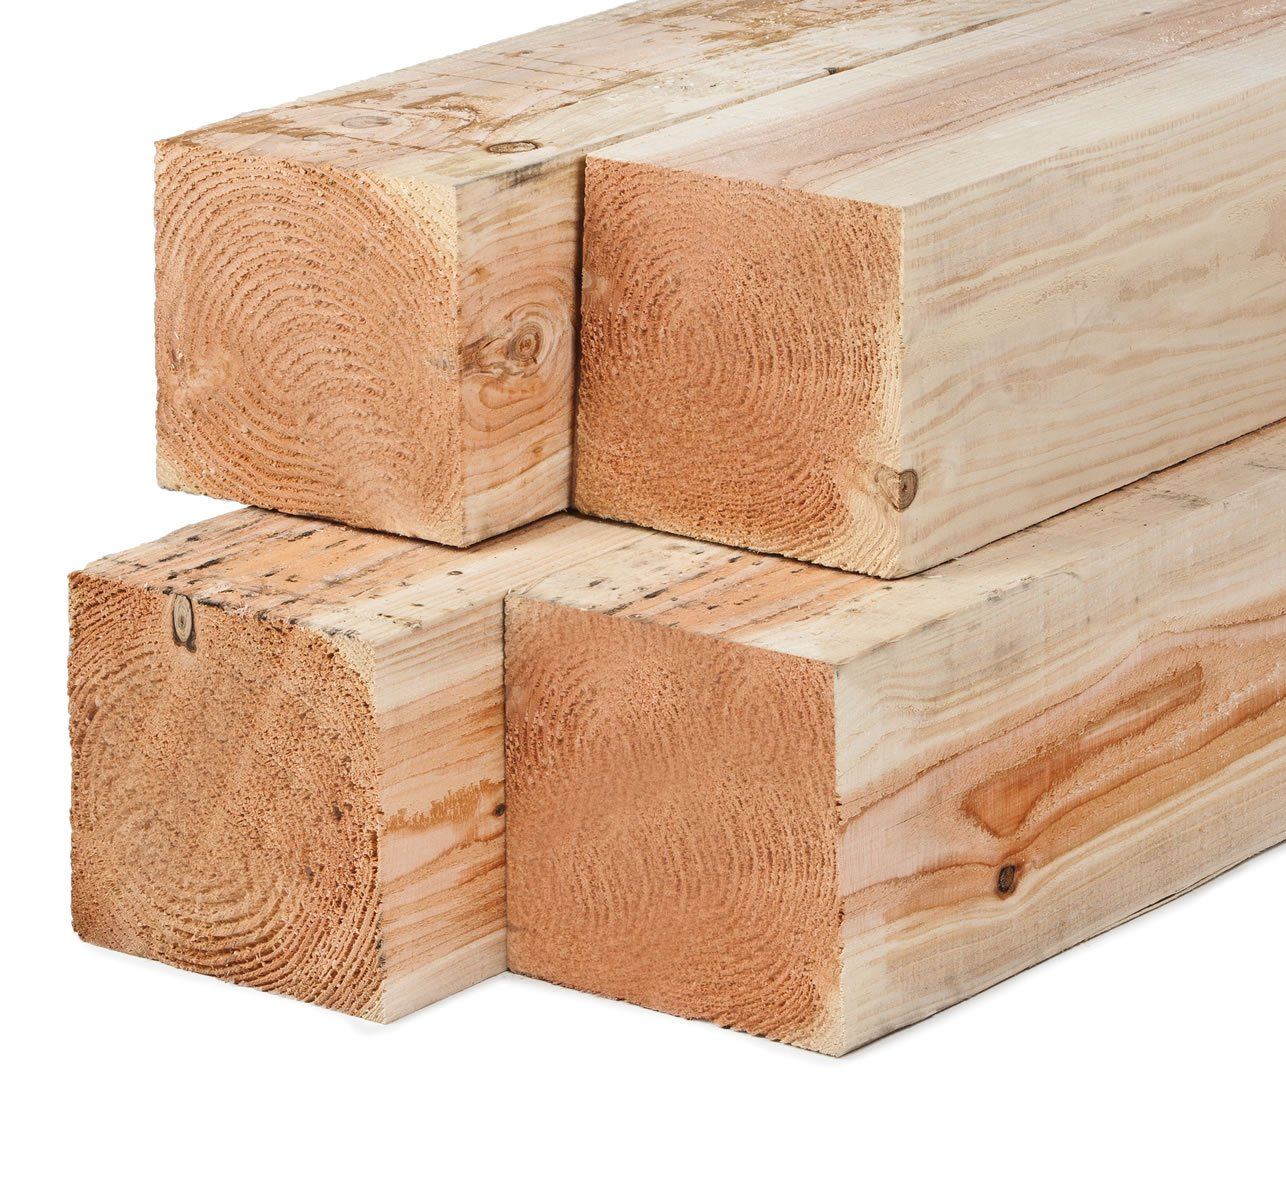 Larch undried timber posts